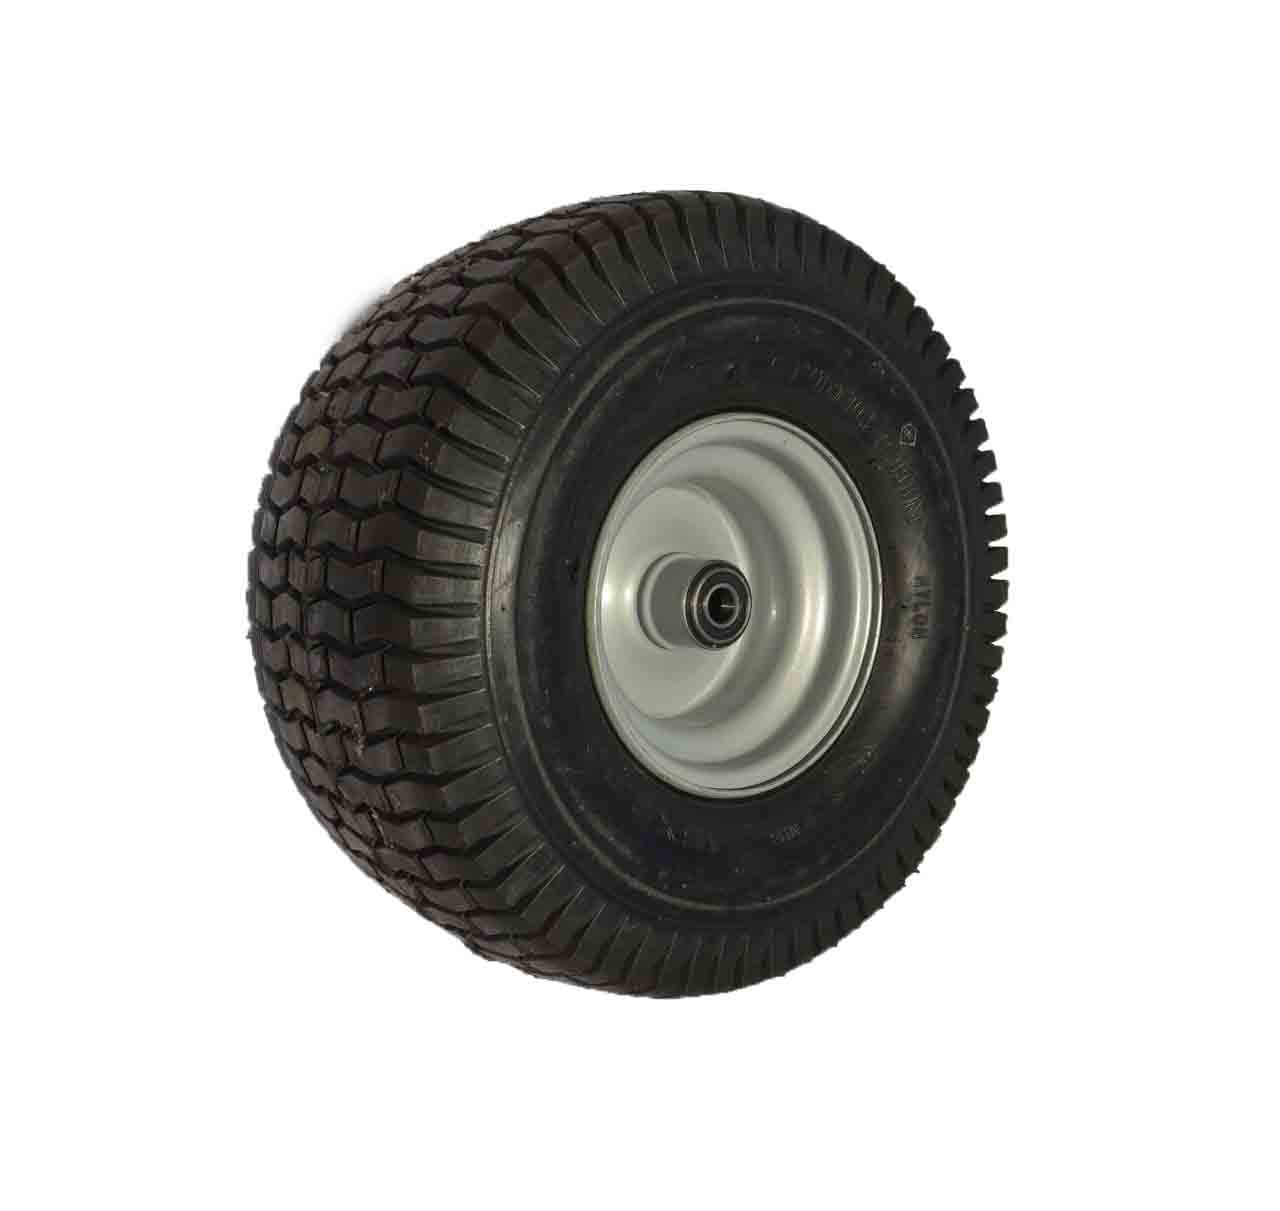 """15x6-6 Turf Tire Floater Assembly with 5/8"""" Bearings"""